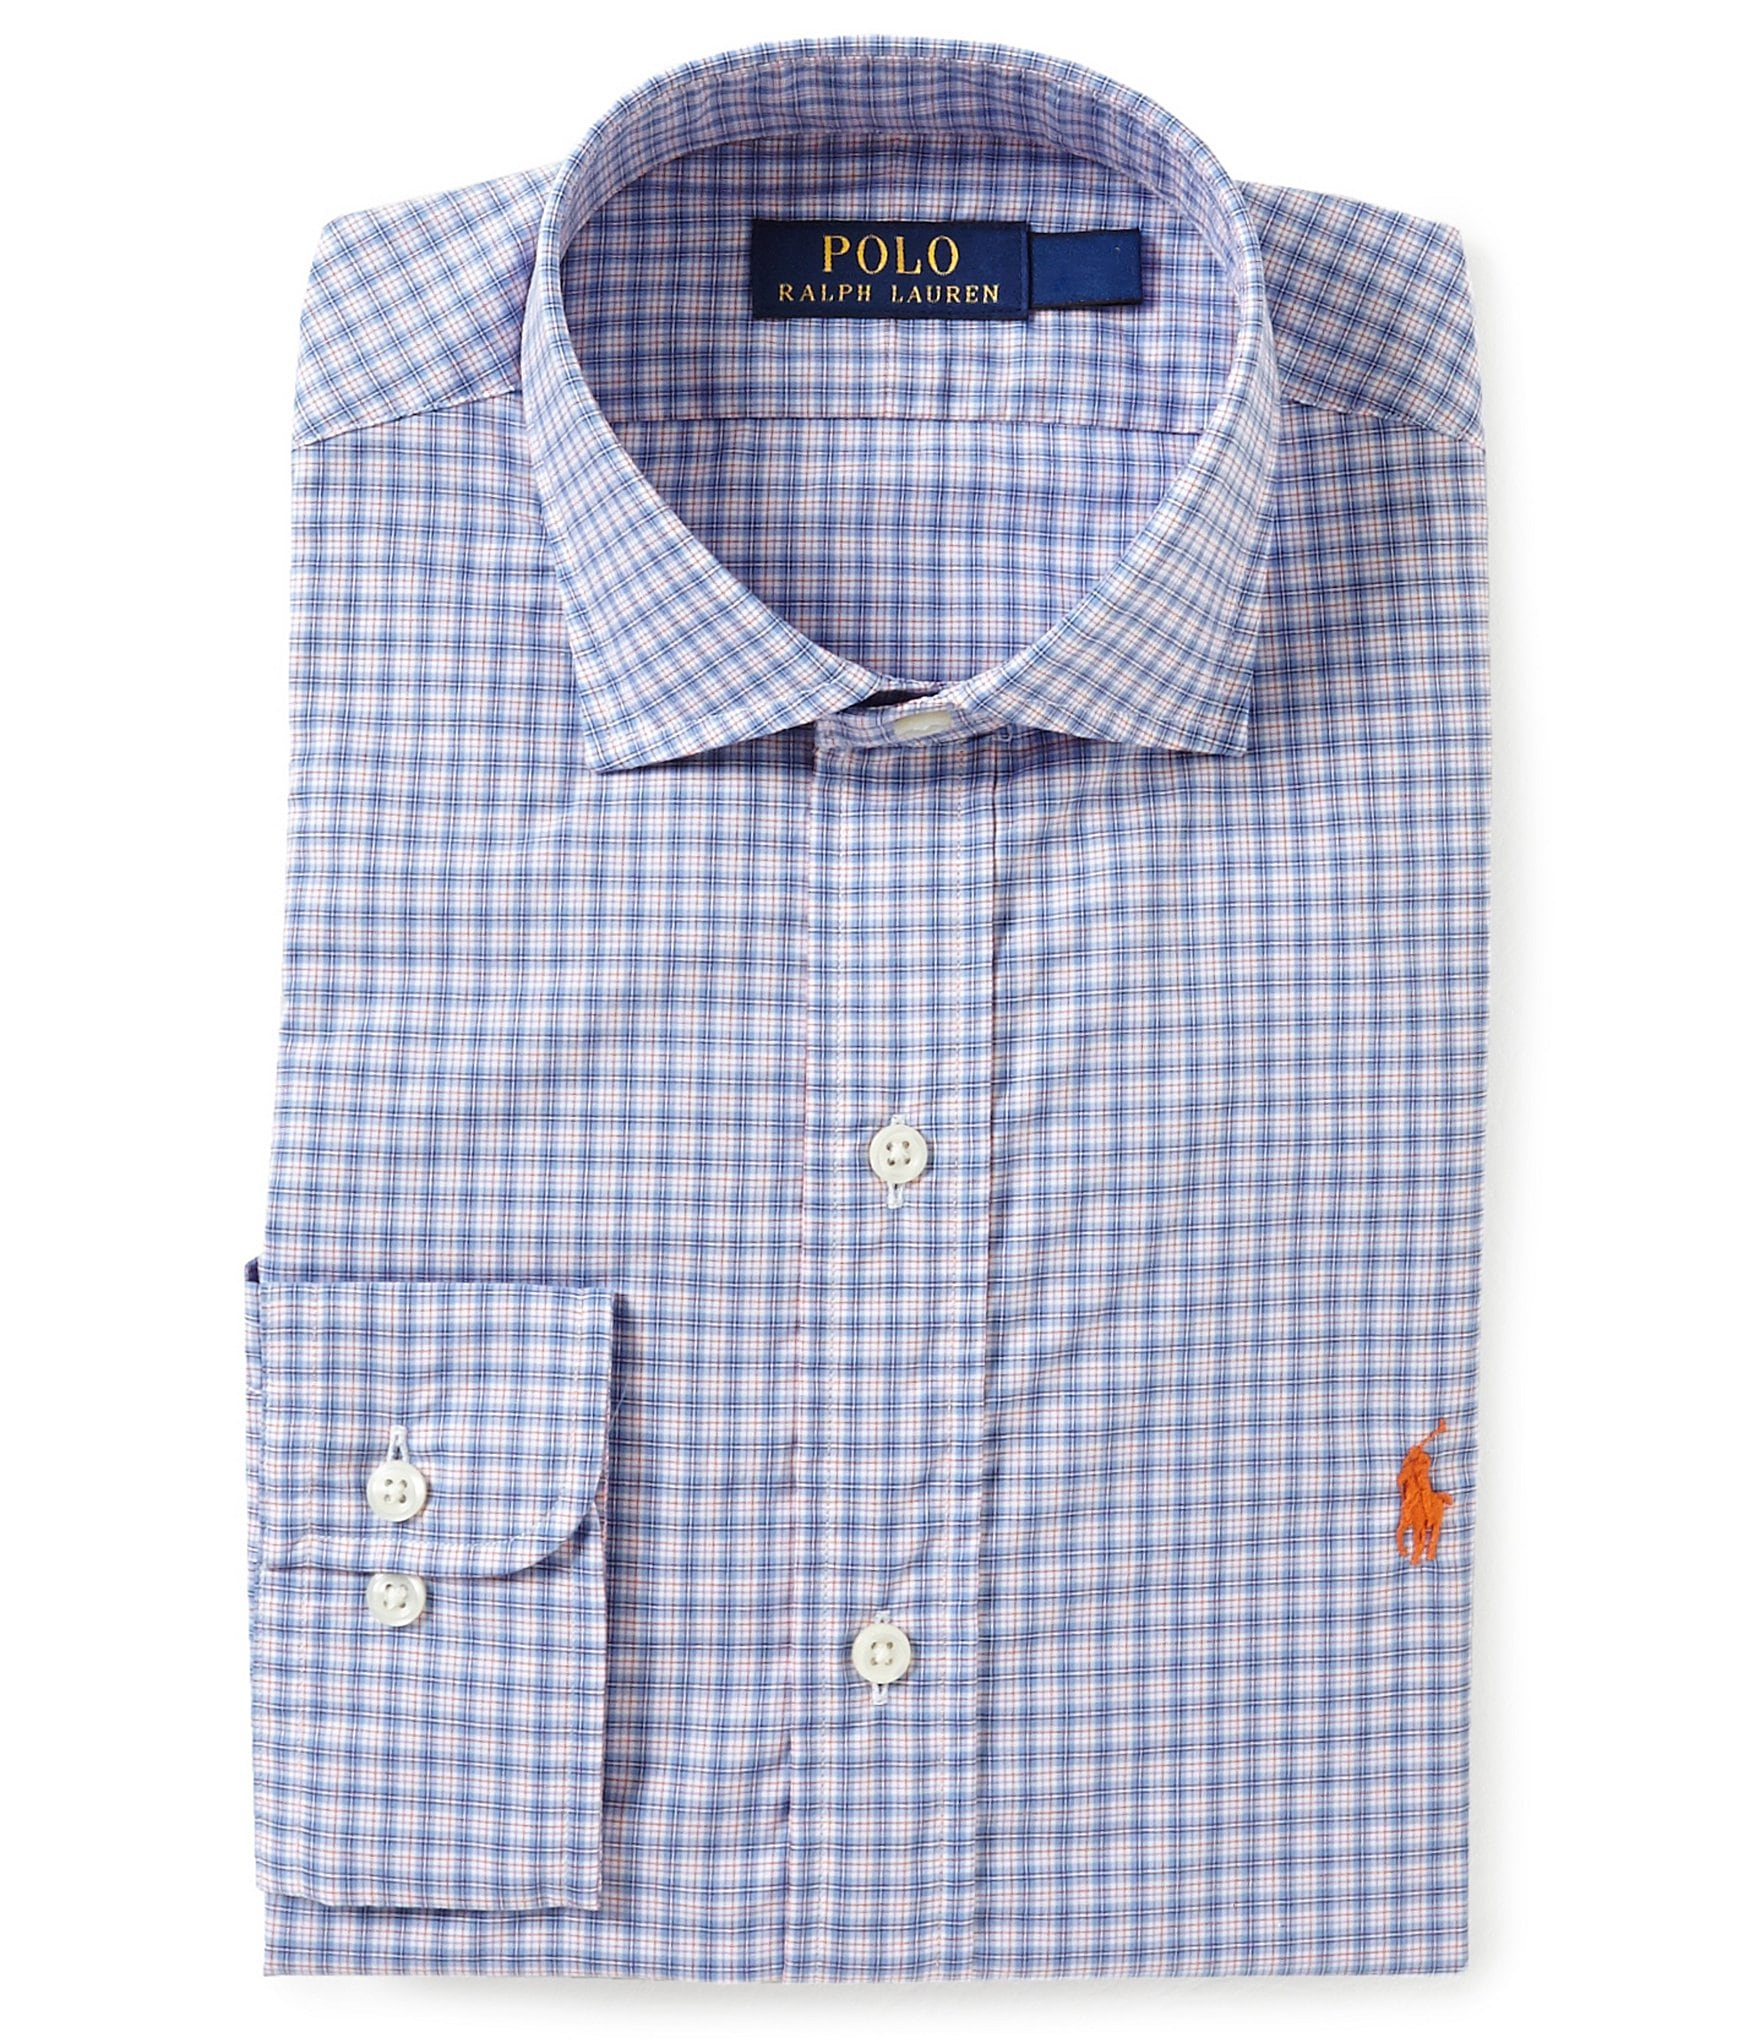 Polo Dress Shirts Dillards - Prism Contractors & Engineers